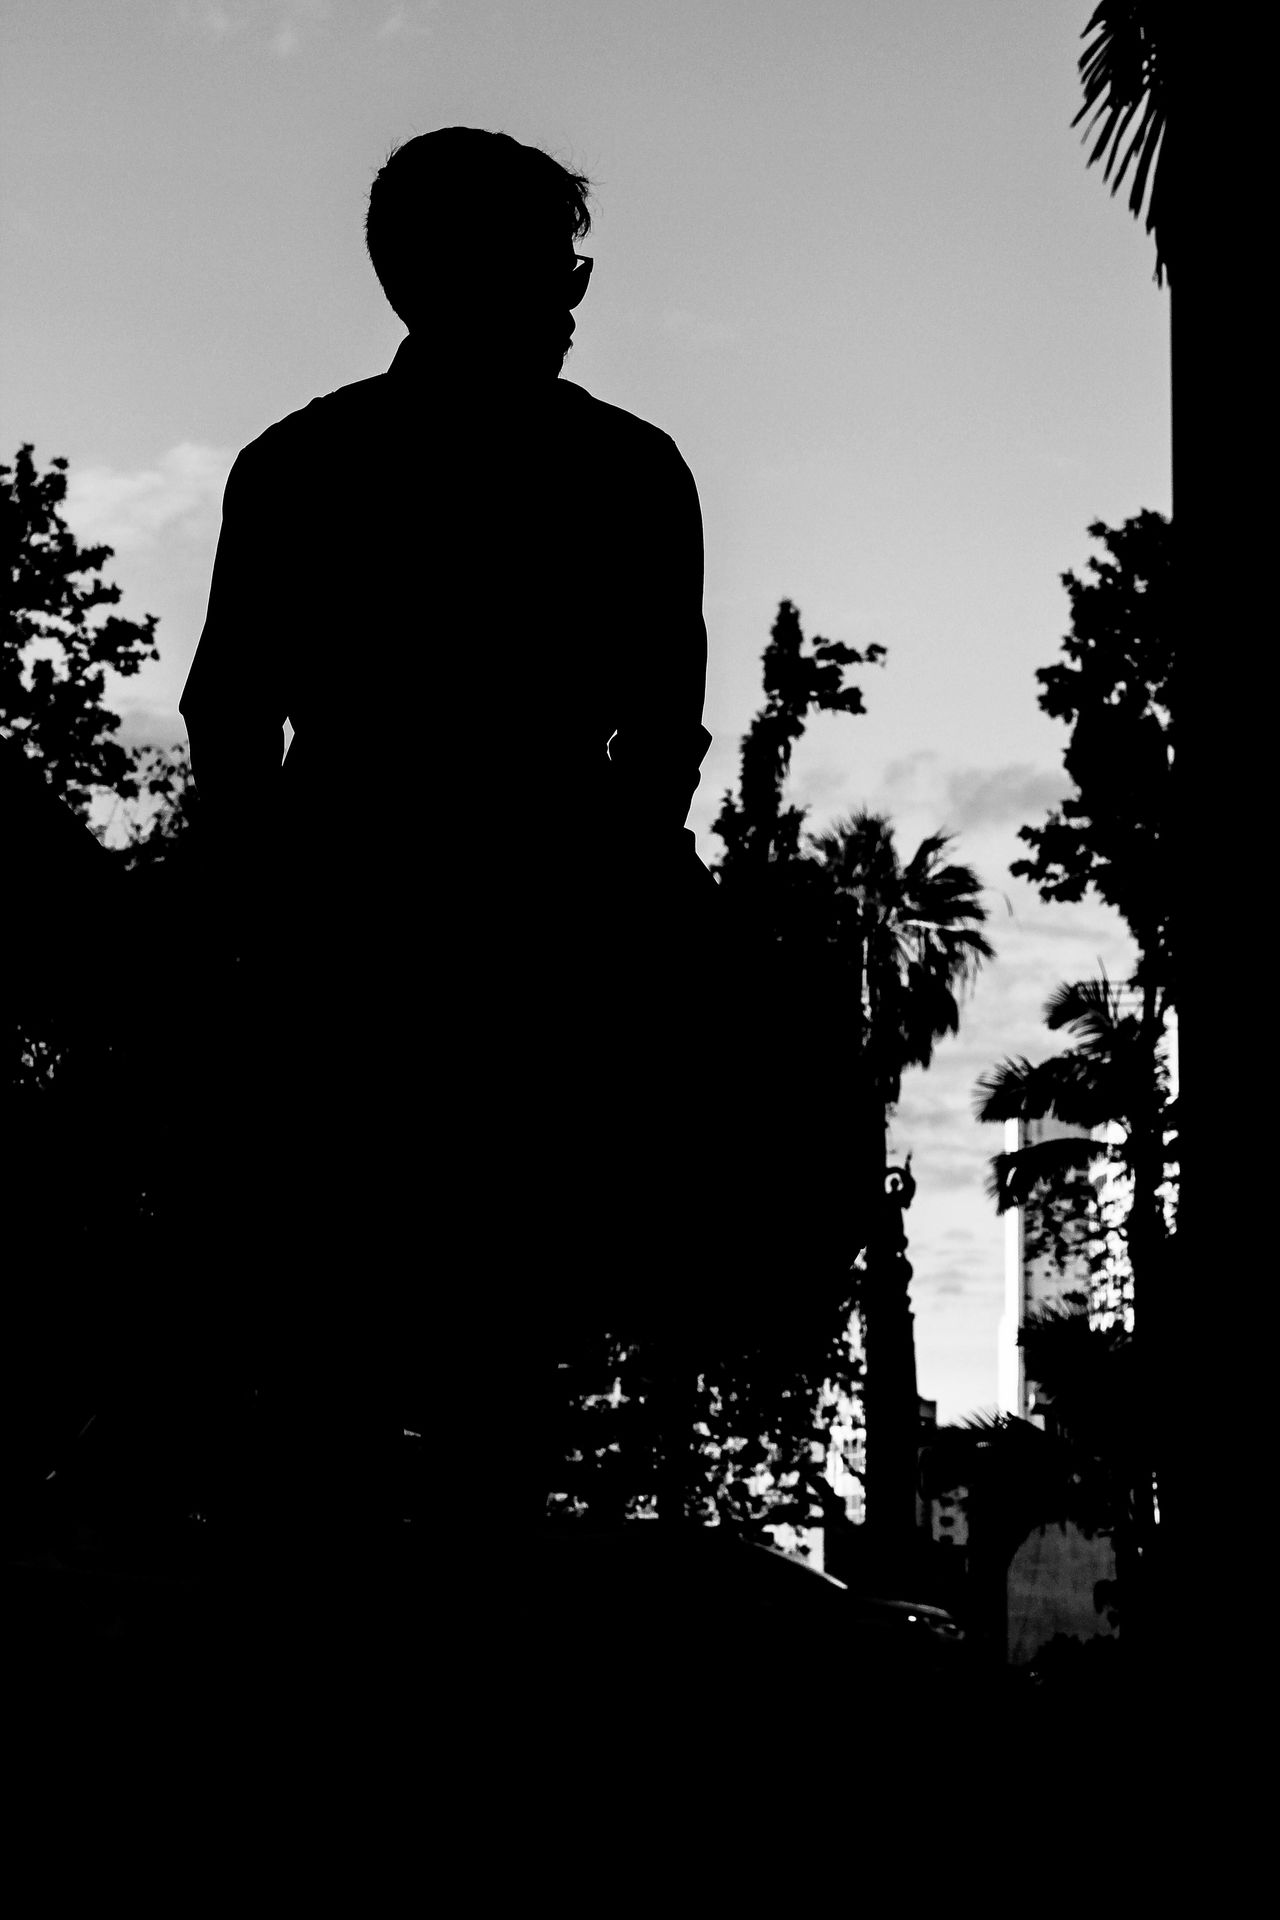 Figure It Out. Urban The Street Photographer - 2017 EyeEm Awards Canon Rebel T3 Urban Landscape One Person Silhouette One Man Only People Outdoors Standing Real People Shadows & Lights The Great Outdoors - 2017 EyeEm Awards Black & White Textures And Surfaces The Great Outdoors - 2017 EyeEm Awards The Street Photographer - 2017 EyeEm Awards Place Of Heart EyeEm Selects